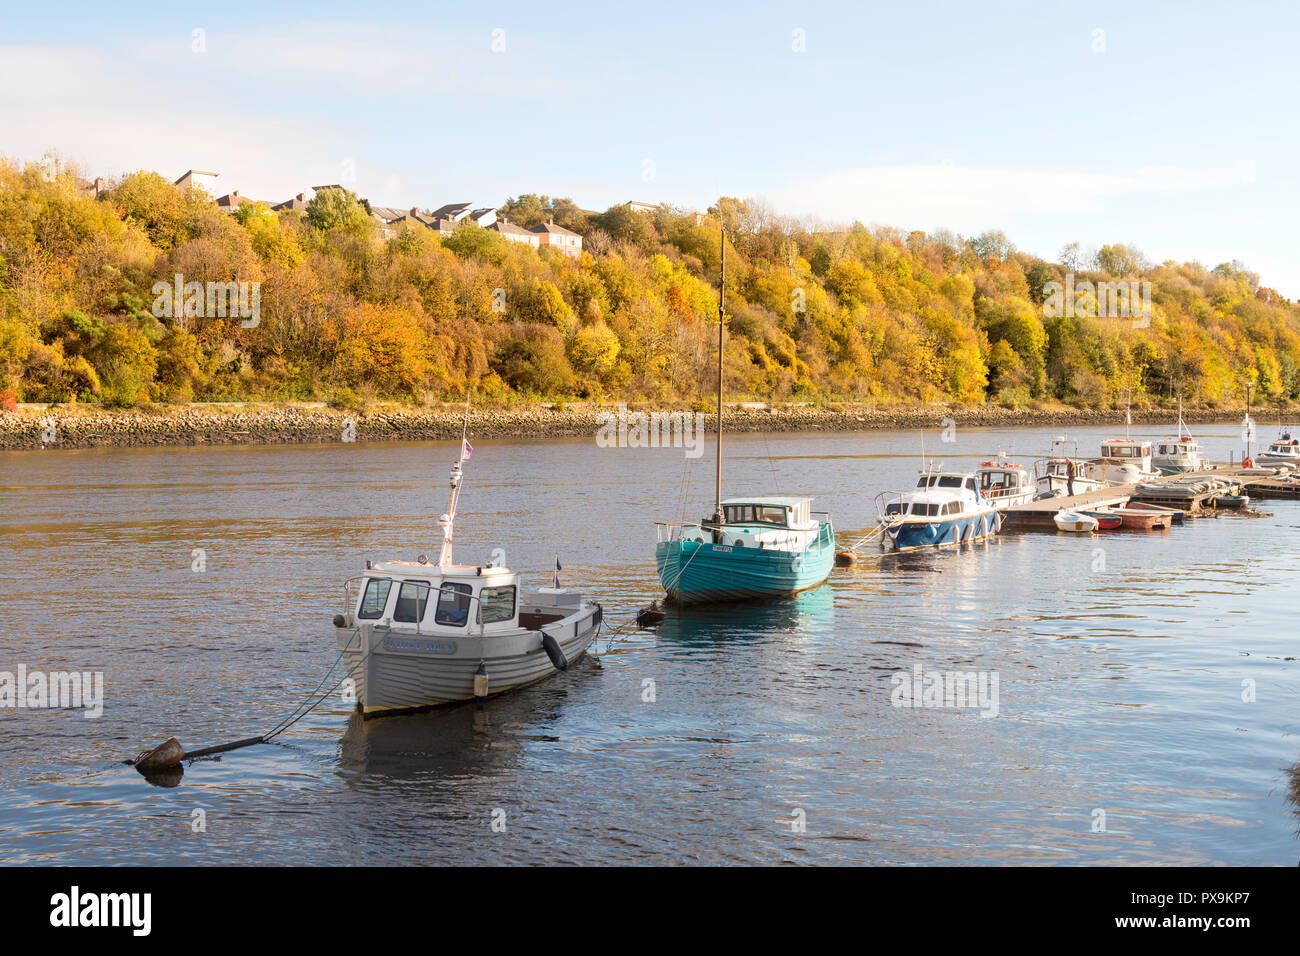 Boats moored in the river Tyne at Friars Goose Water Sports Club, in Gateshead, England, UK - Stock Image